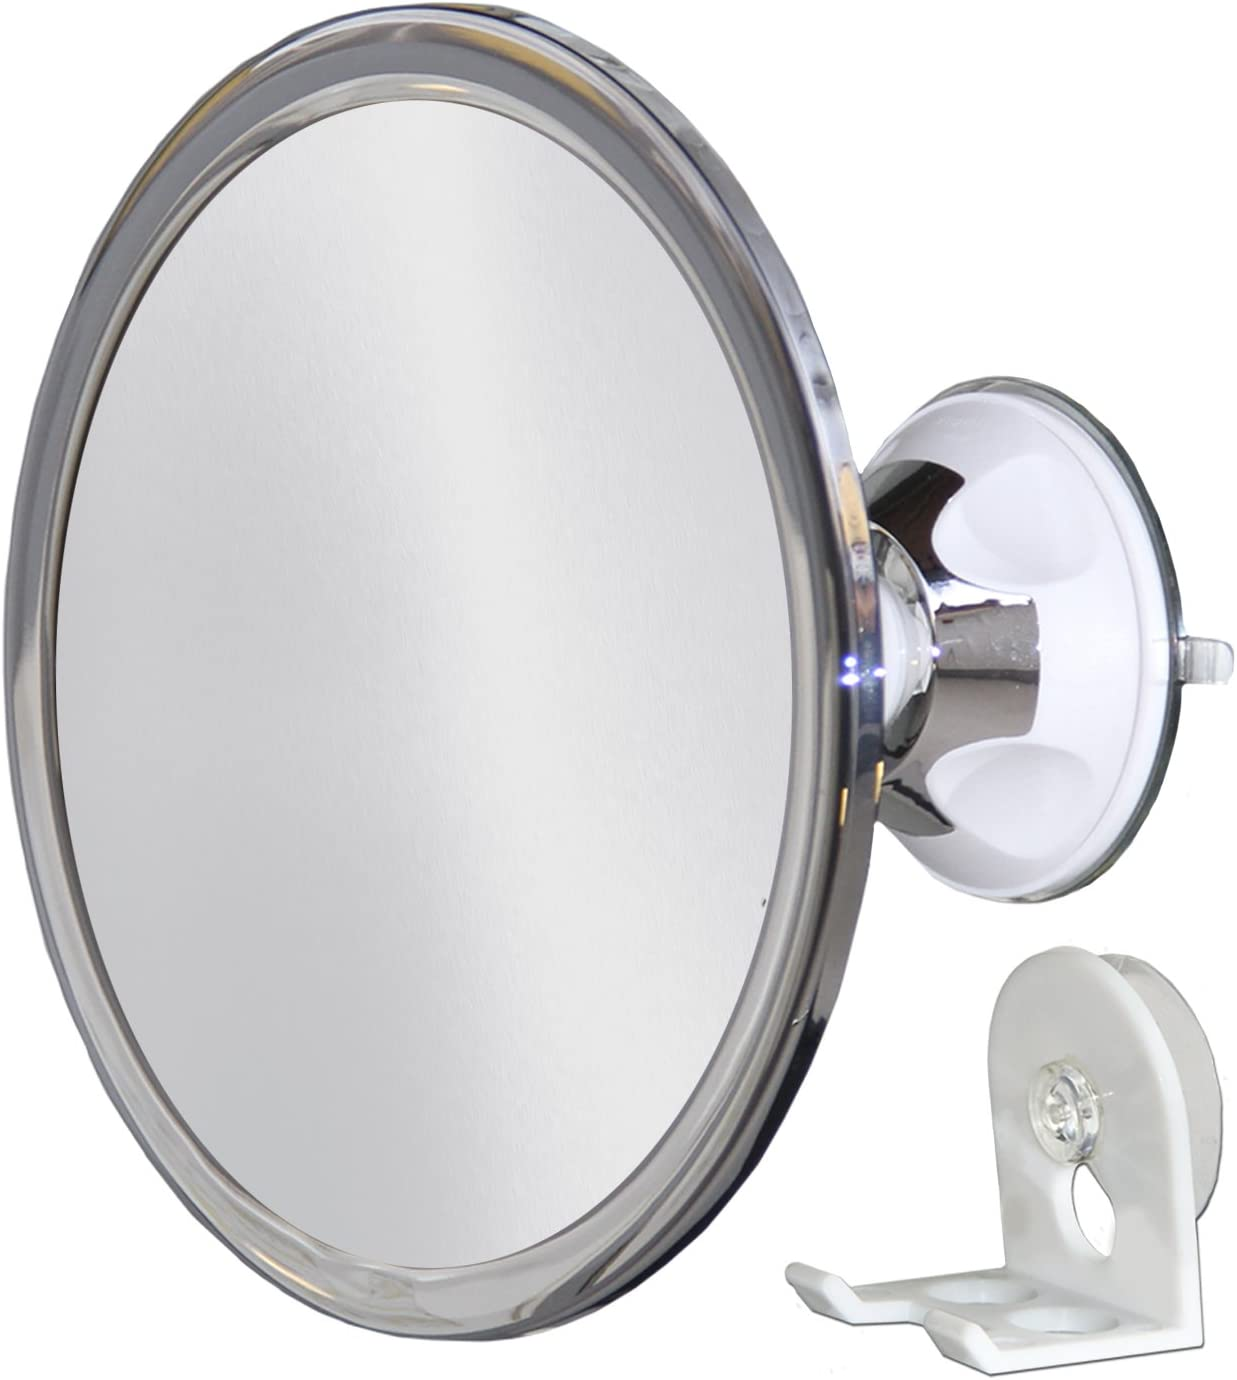 Top 10 Best Fogless Shower Mirrors Reviews in 2020 4